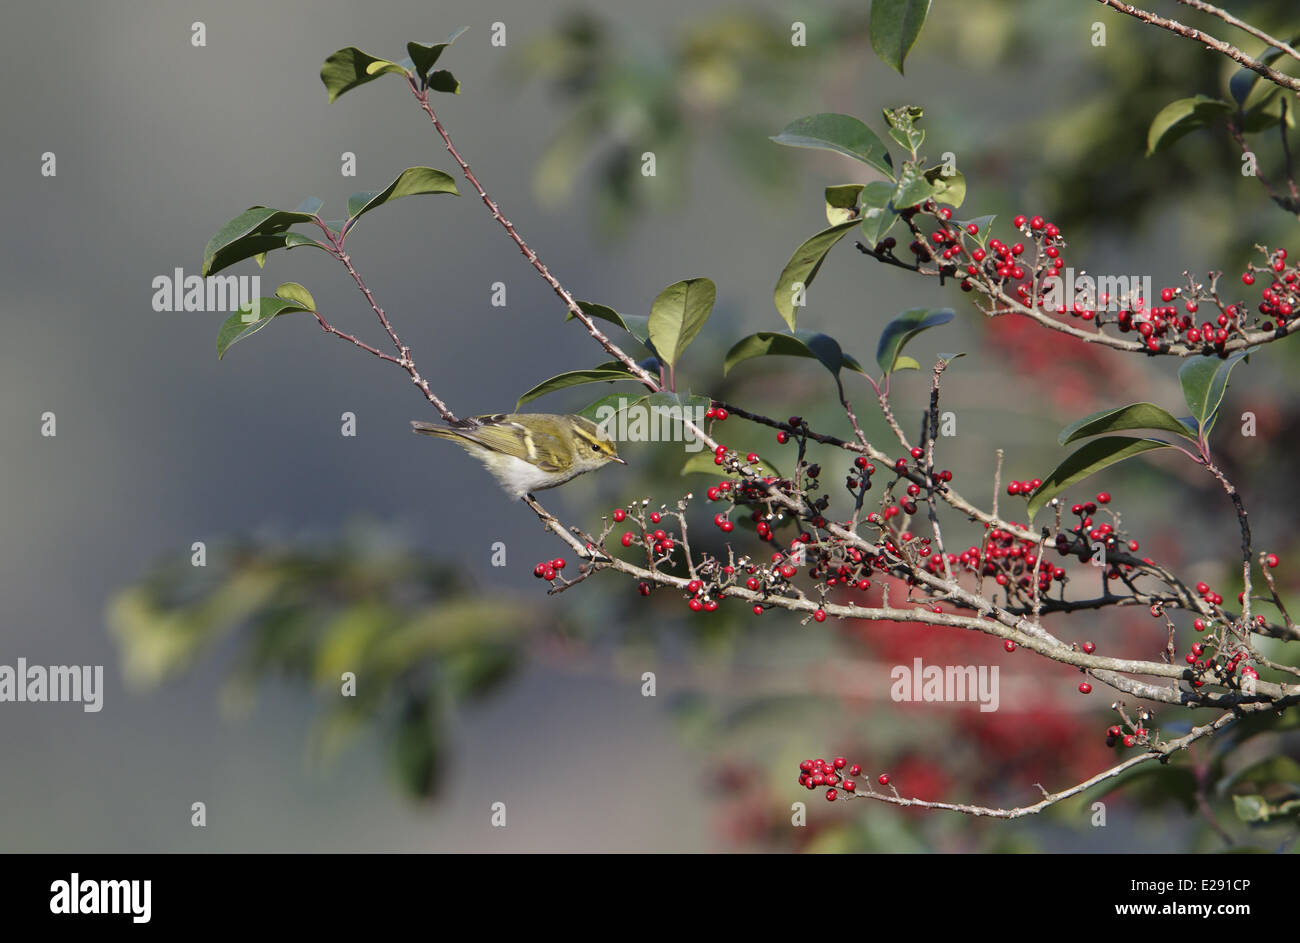 Pallas's Warbler (Phylloscopus proregulus) adult, perched on twig with berries, Hong Kong, China, January Stock Photo